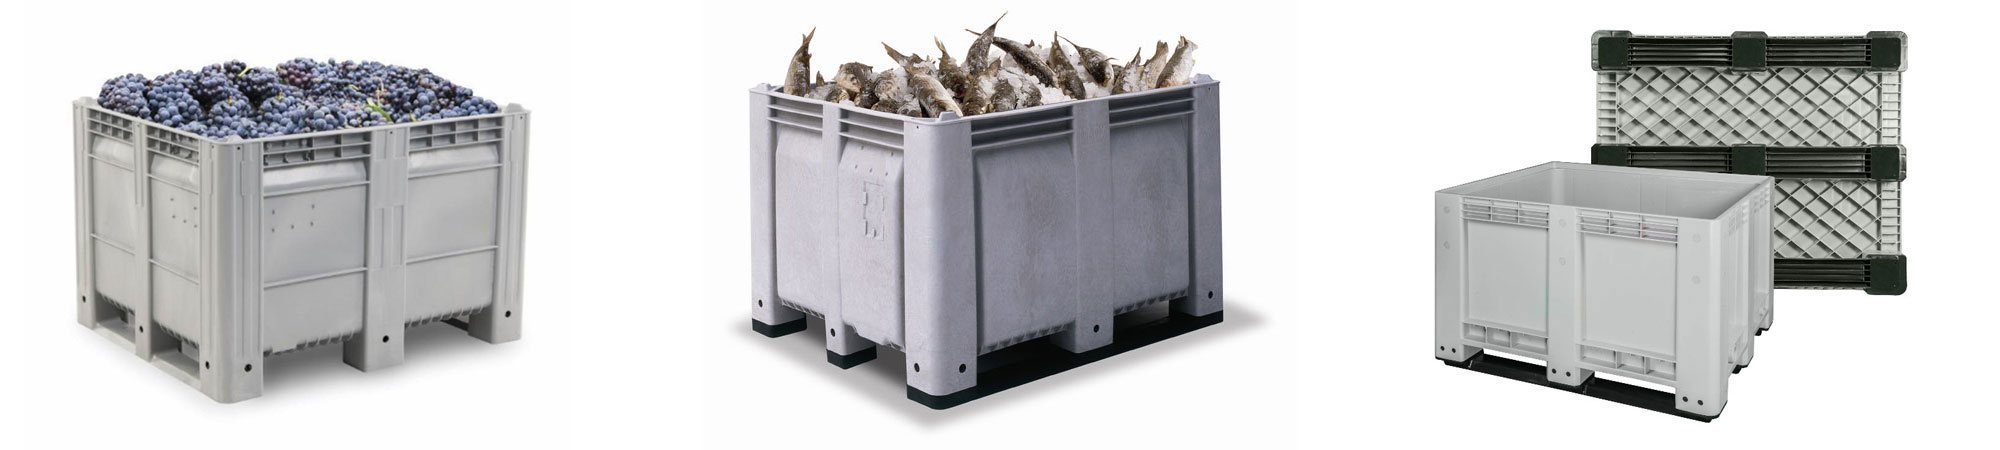 non insulated bins - fish Totes